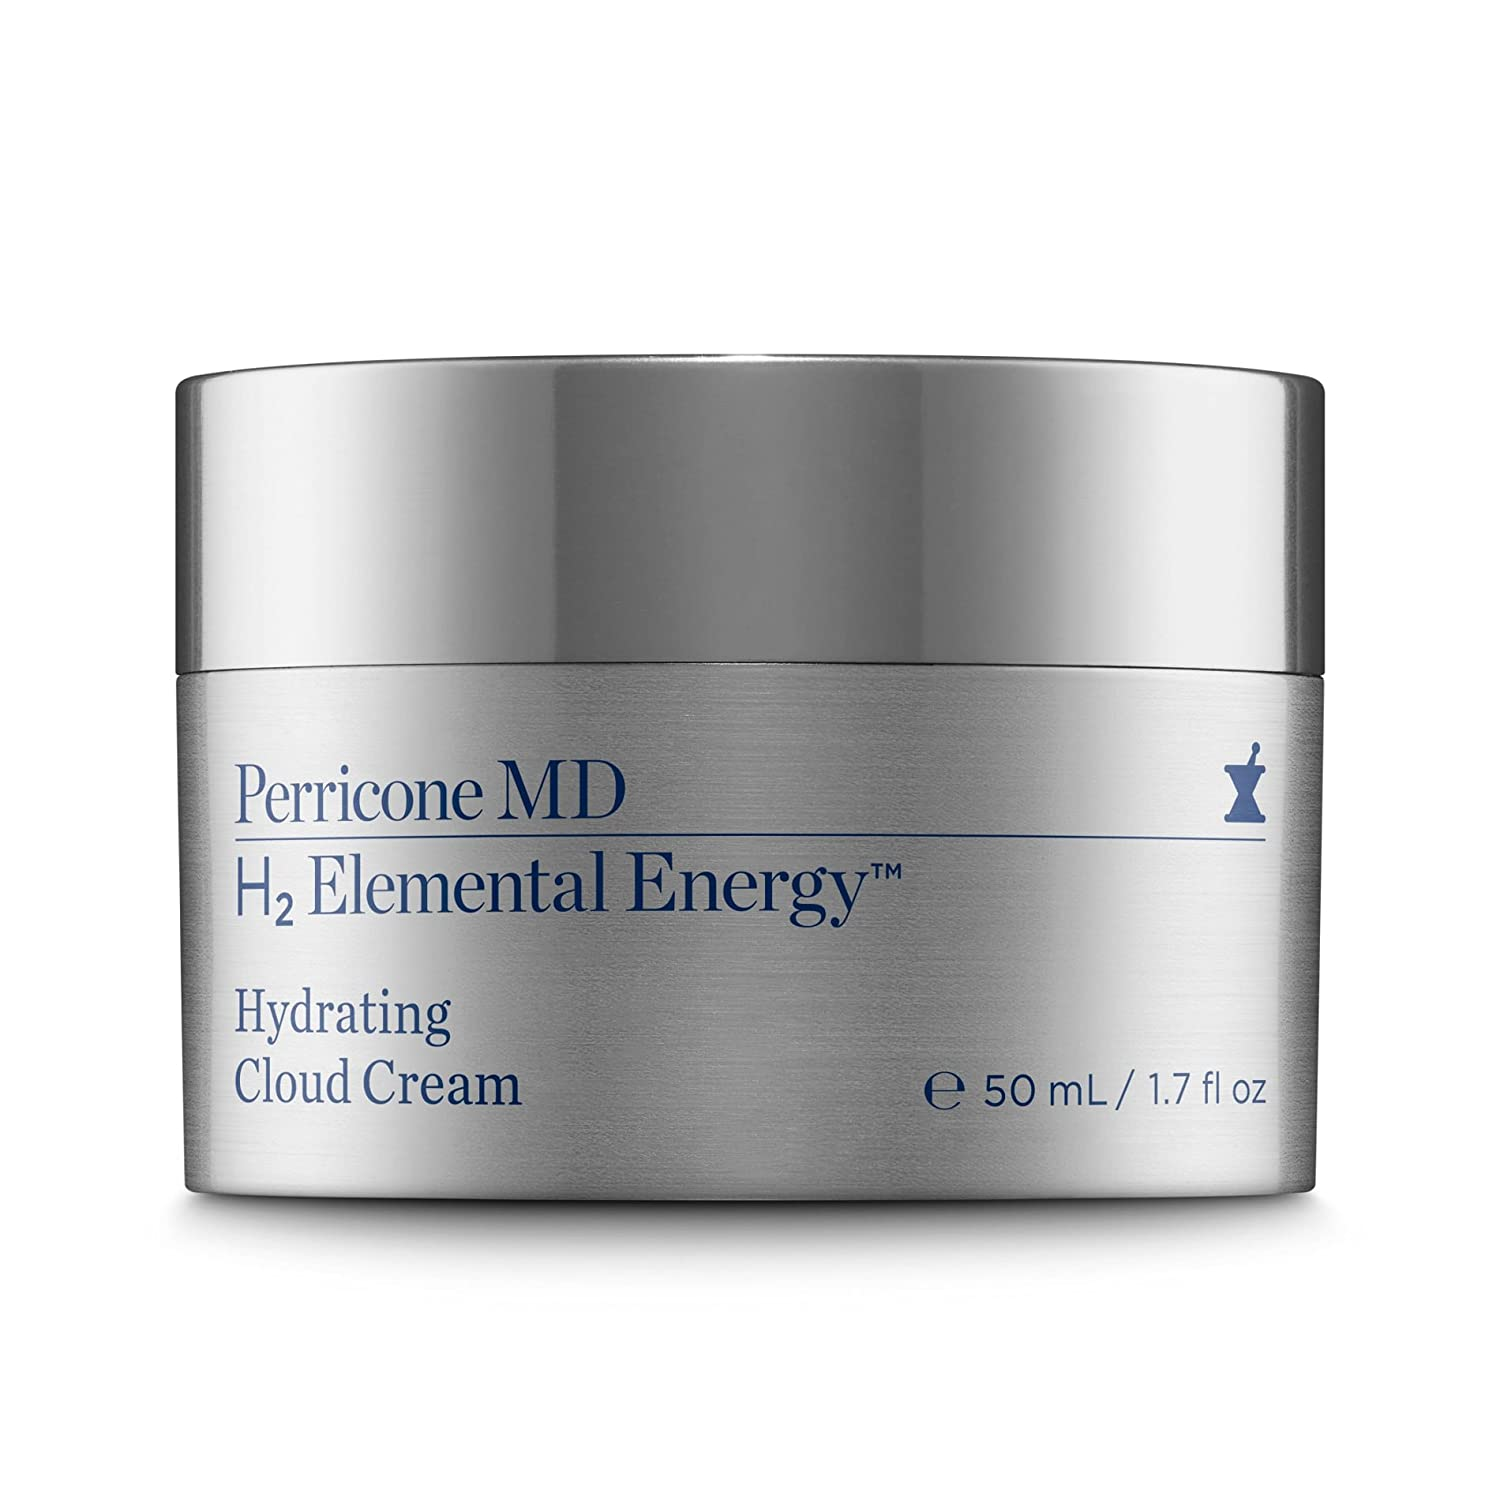 Perricone MD Hydrogen Cloud Cream, 1.7 Ounce Fab Products 5208